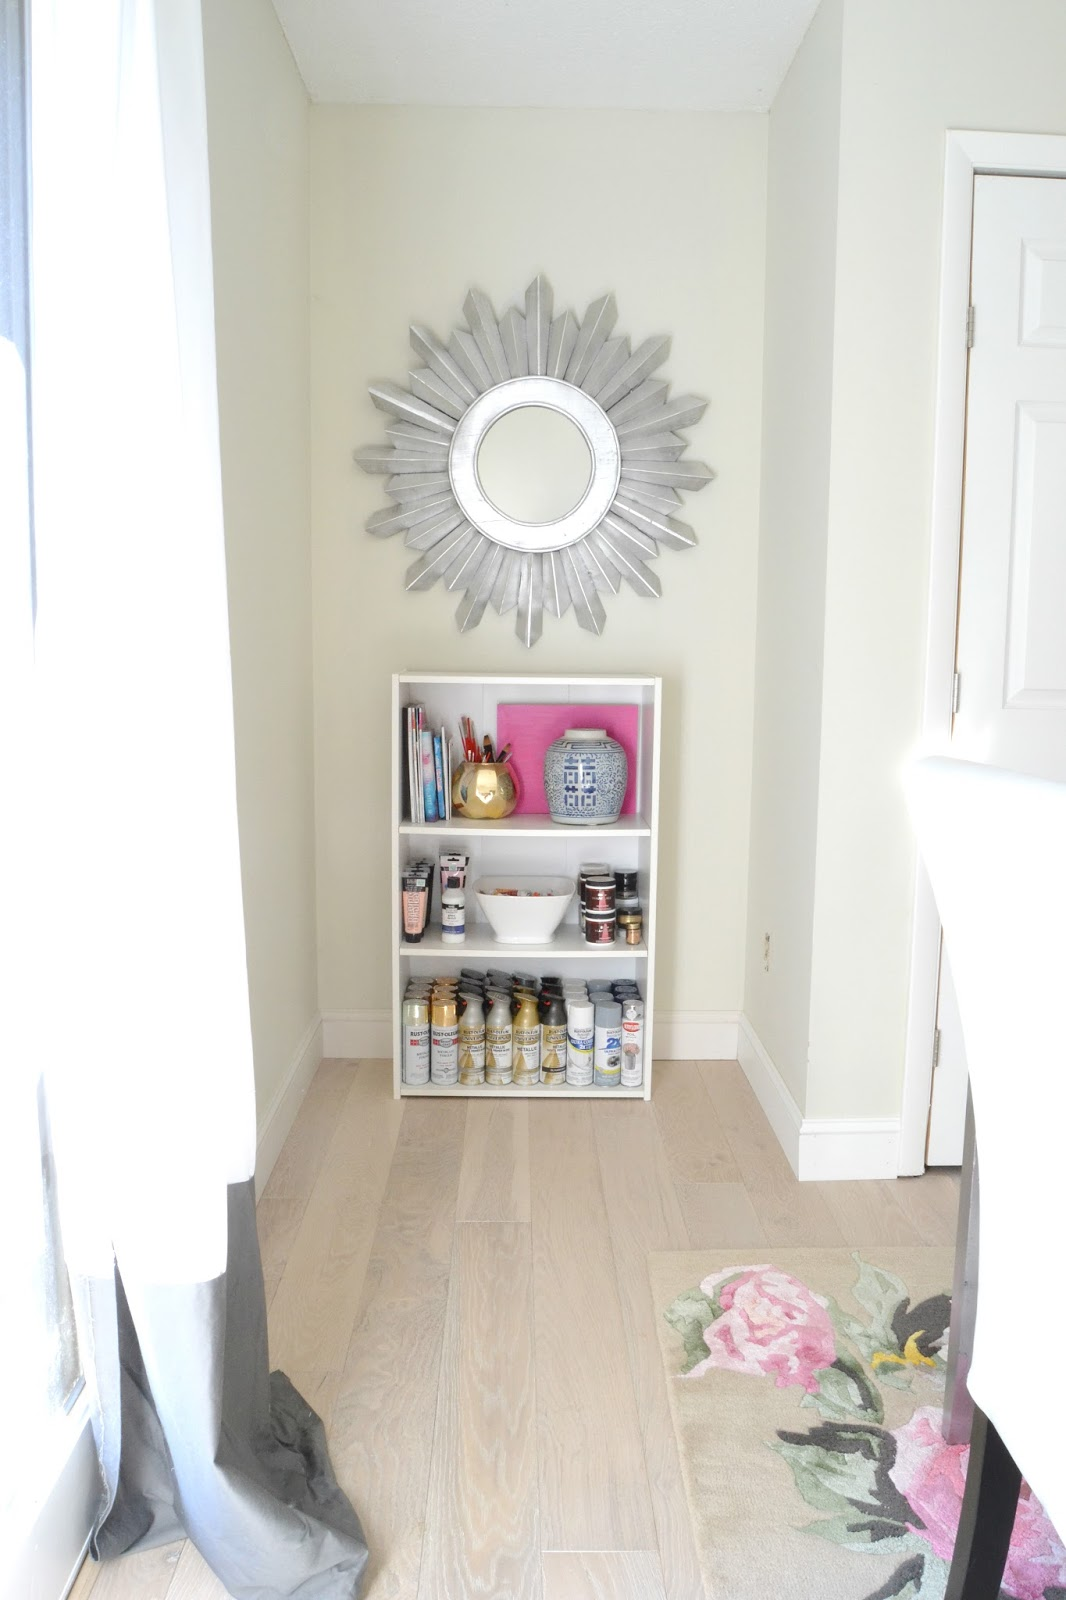 LiveLoveDIY: Home Office Decorating Ideas: My Latest Office Makeover